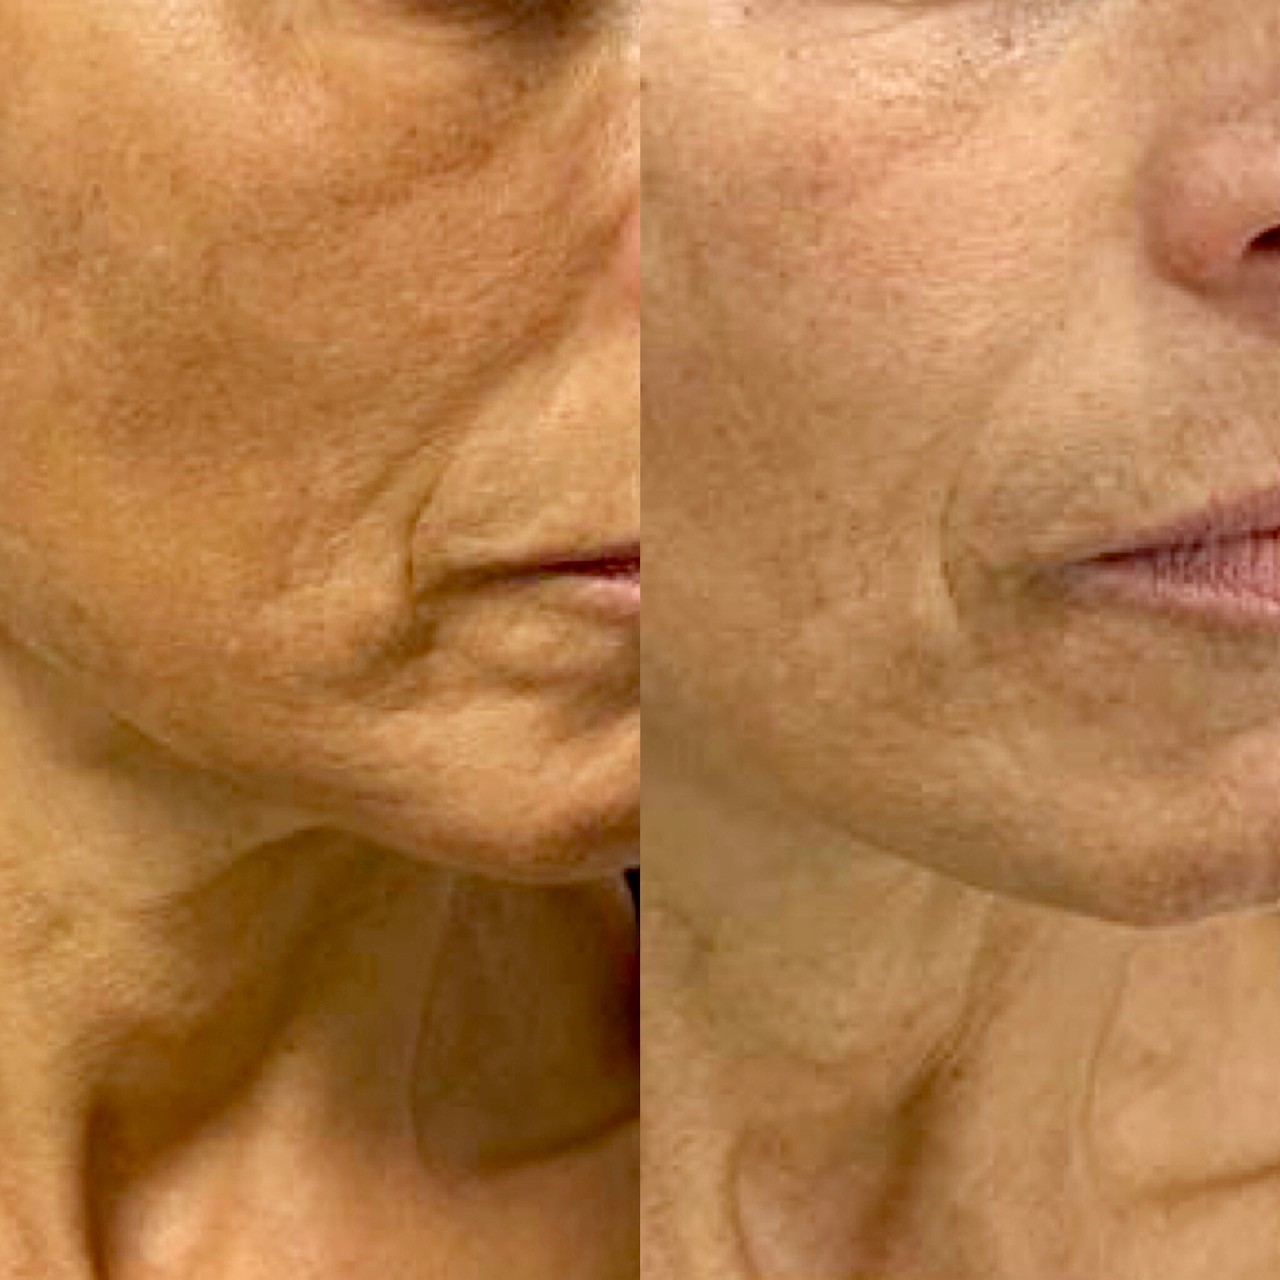 ULTRAcel HIFU skin tightening treatment